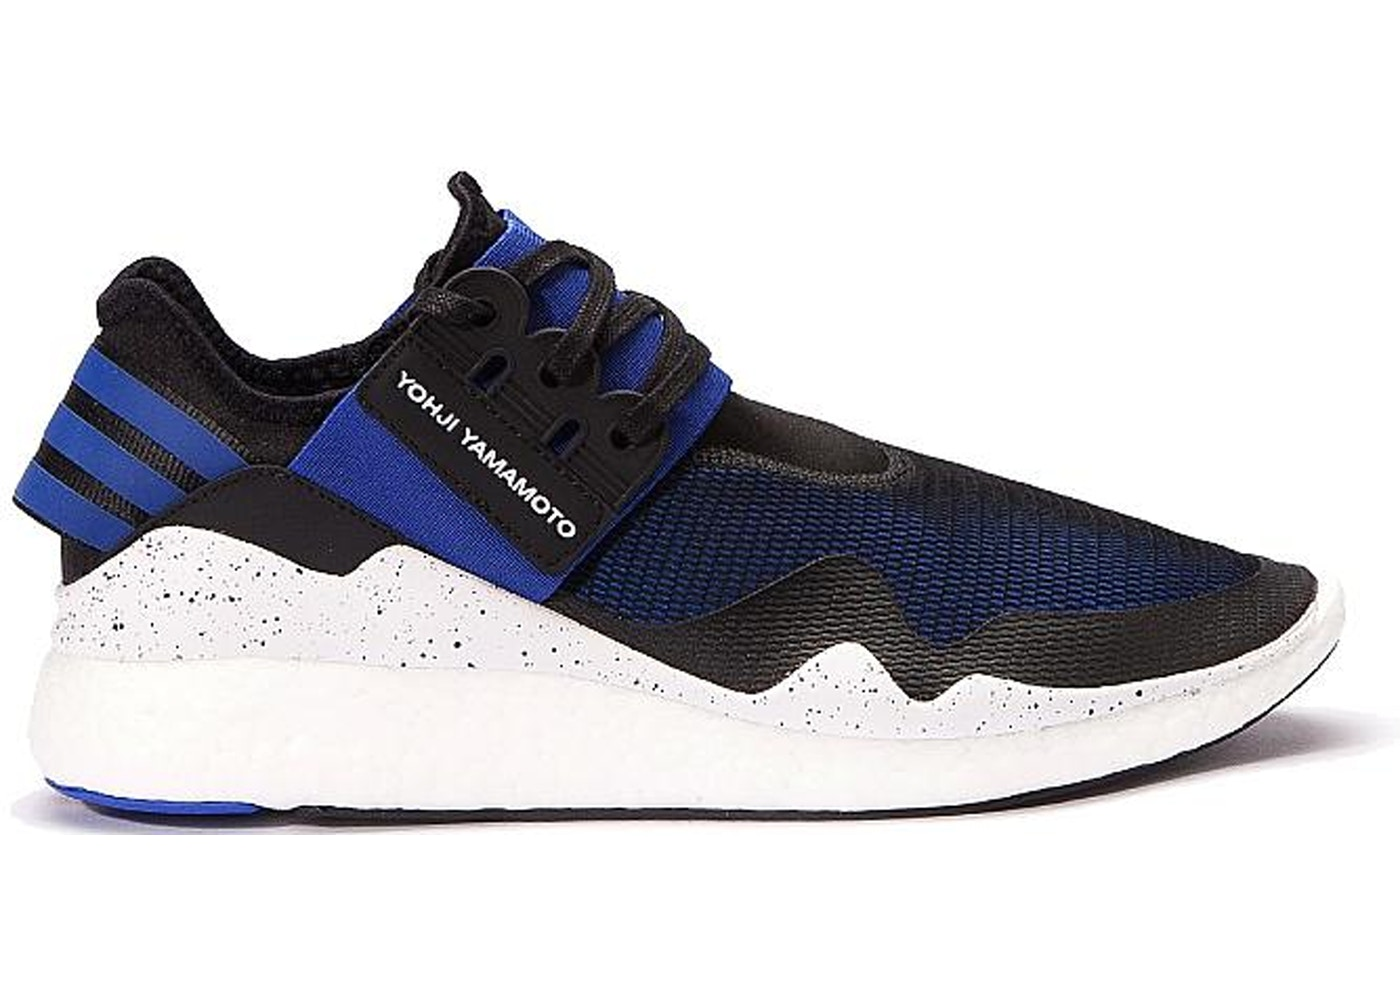 6c26876a3 Sell. or Ask. Size  10. View All Bids. adidas Y-3 Retro Boost Black  Electric Blue